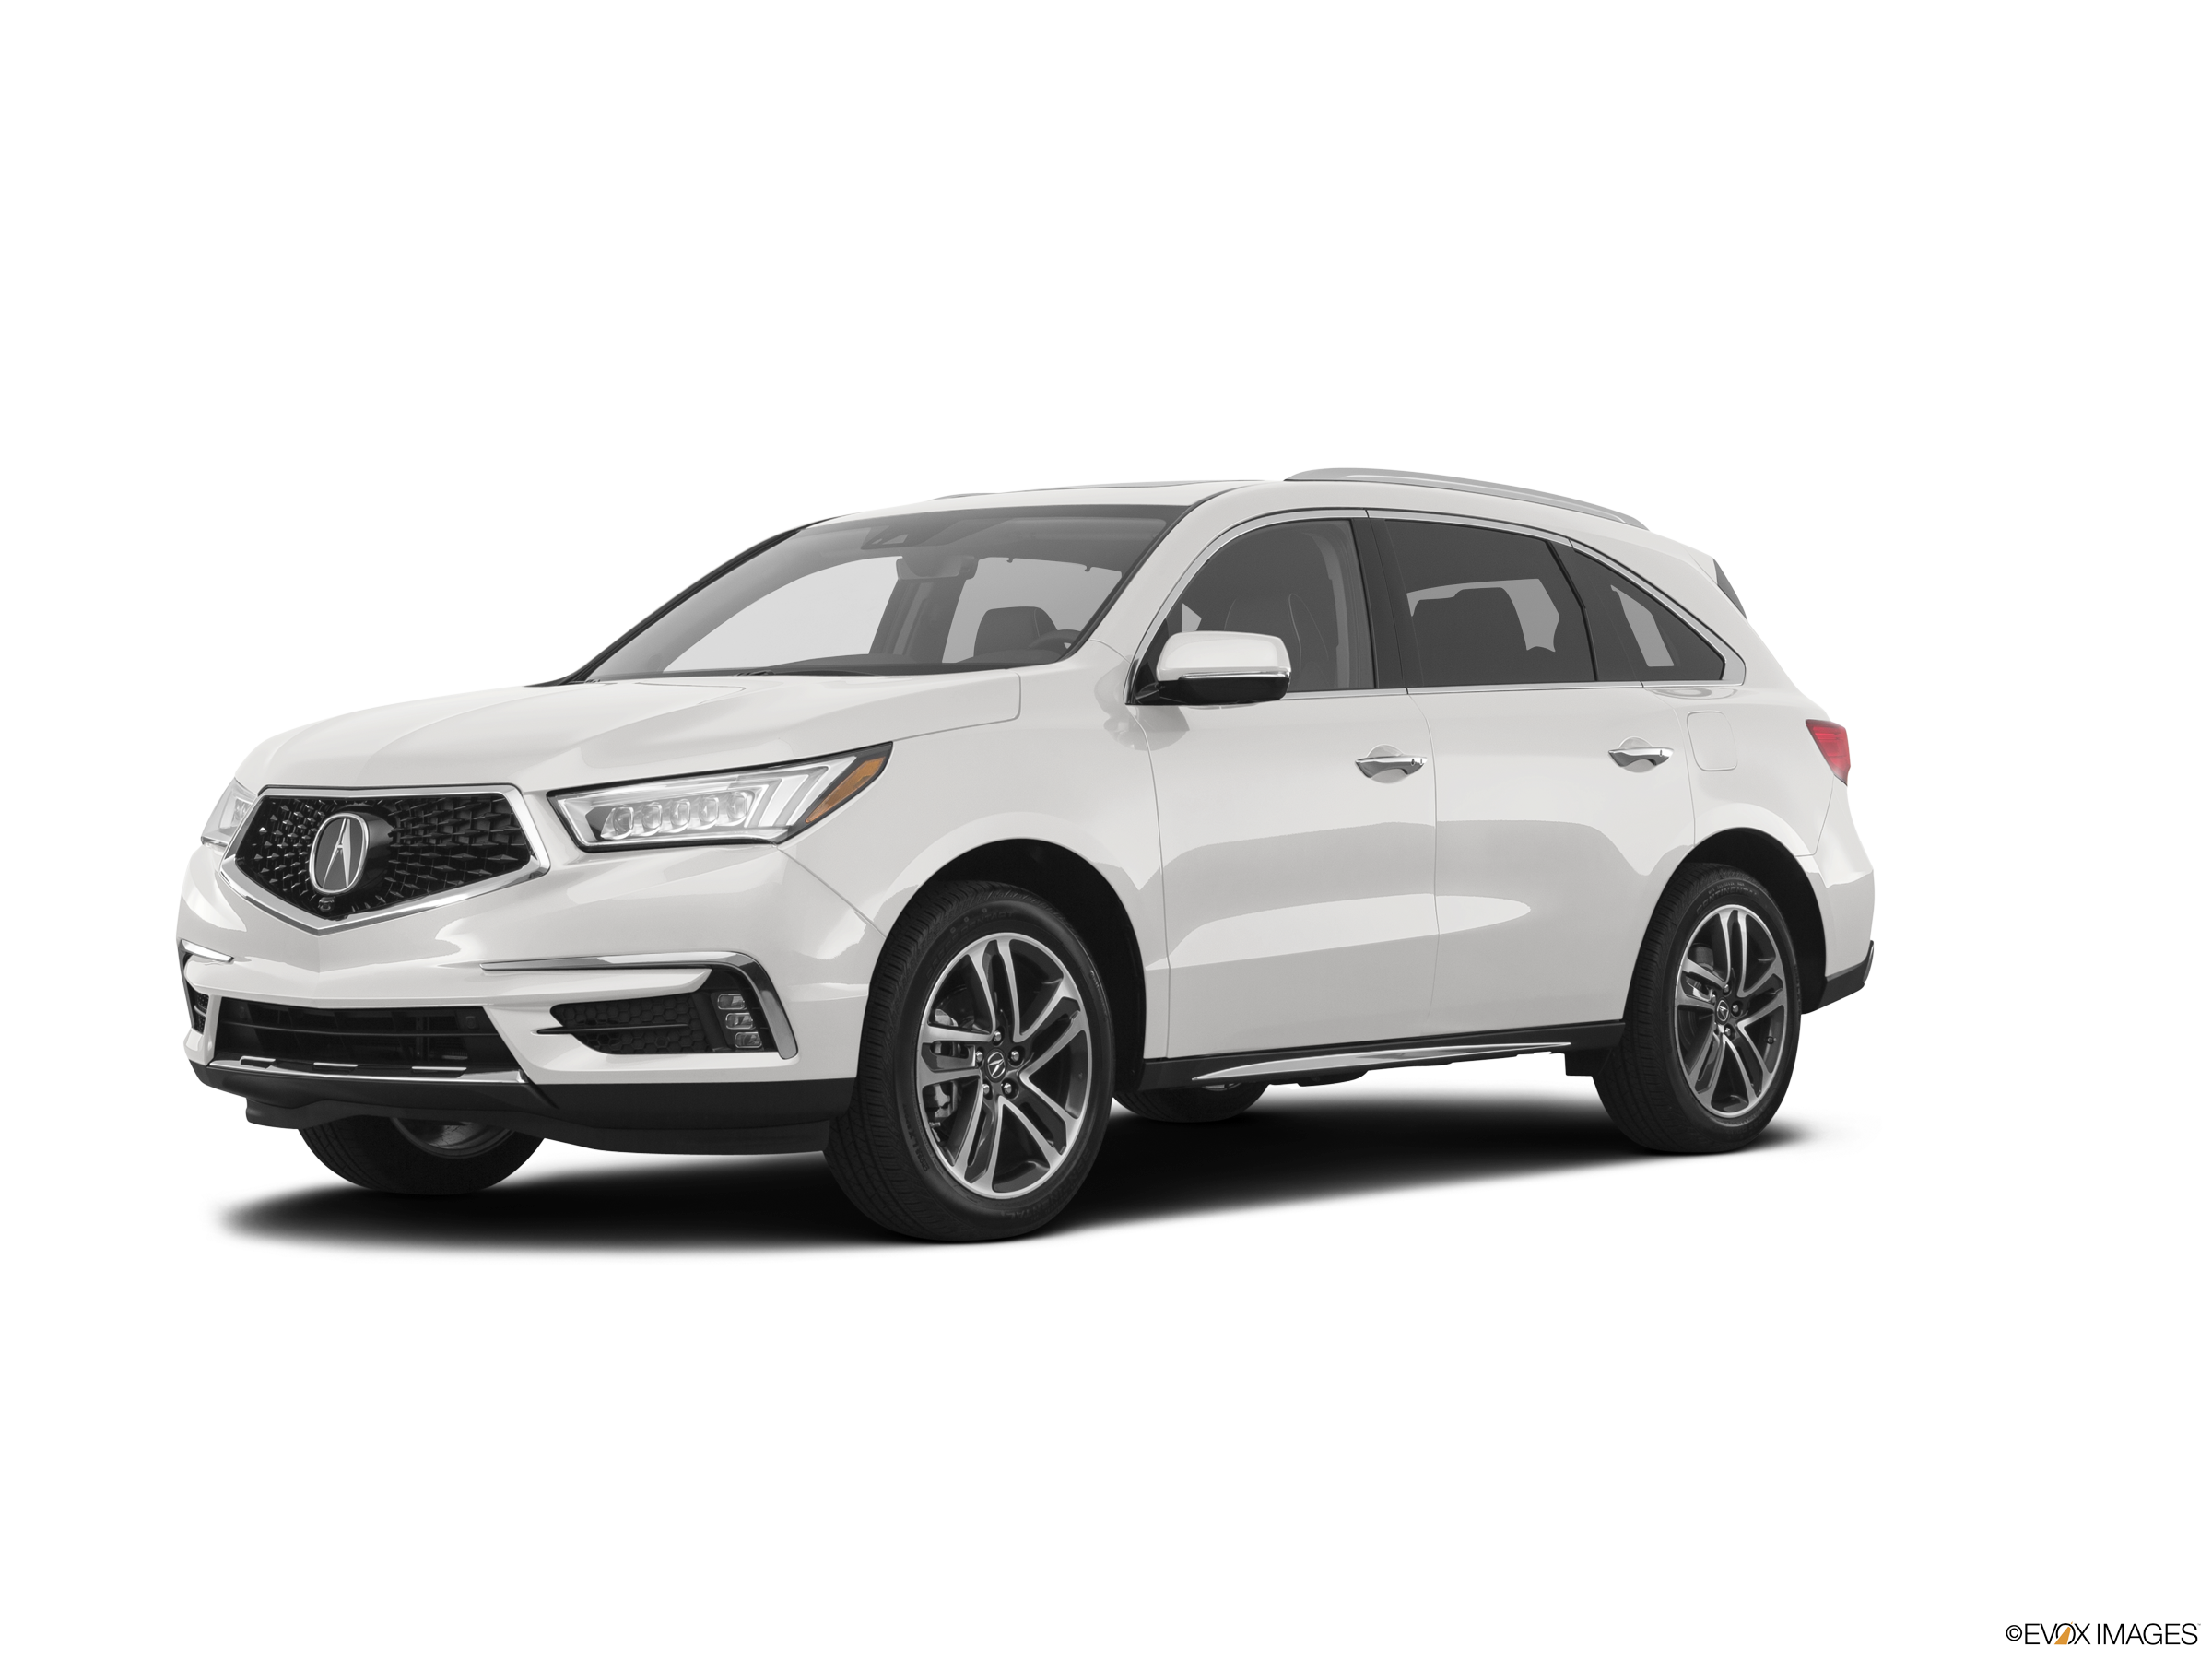 Top Expert Rated SUVS of 2017 - 2017 Acura MDX